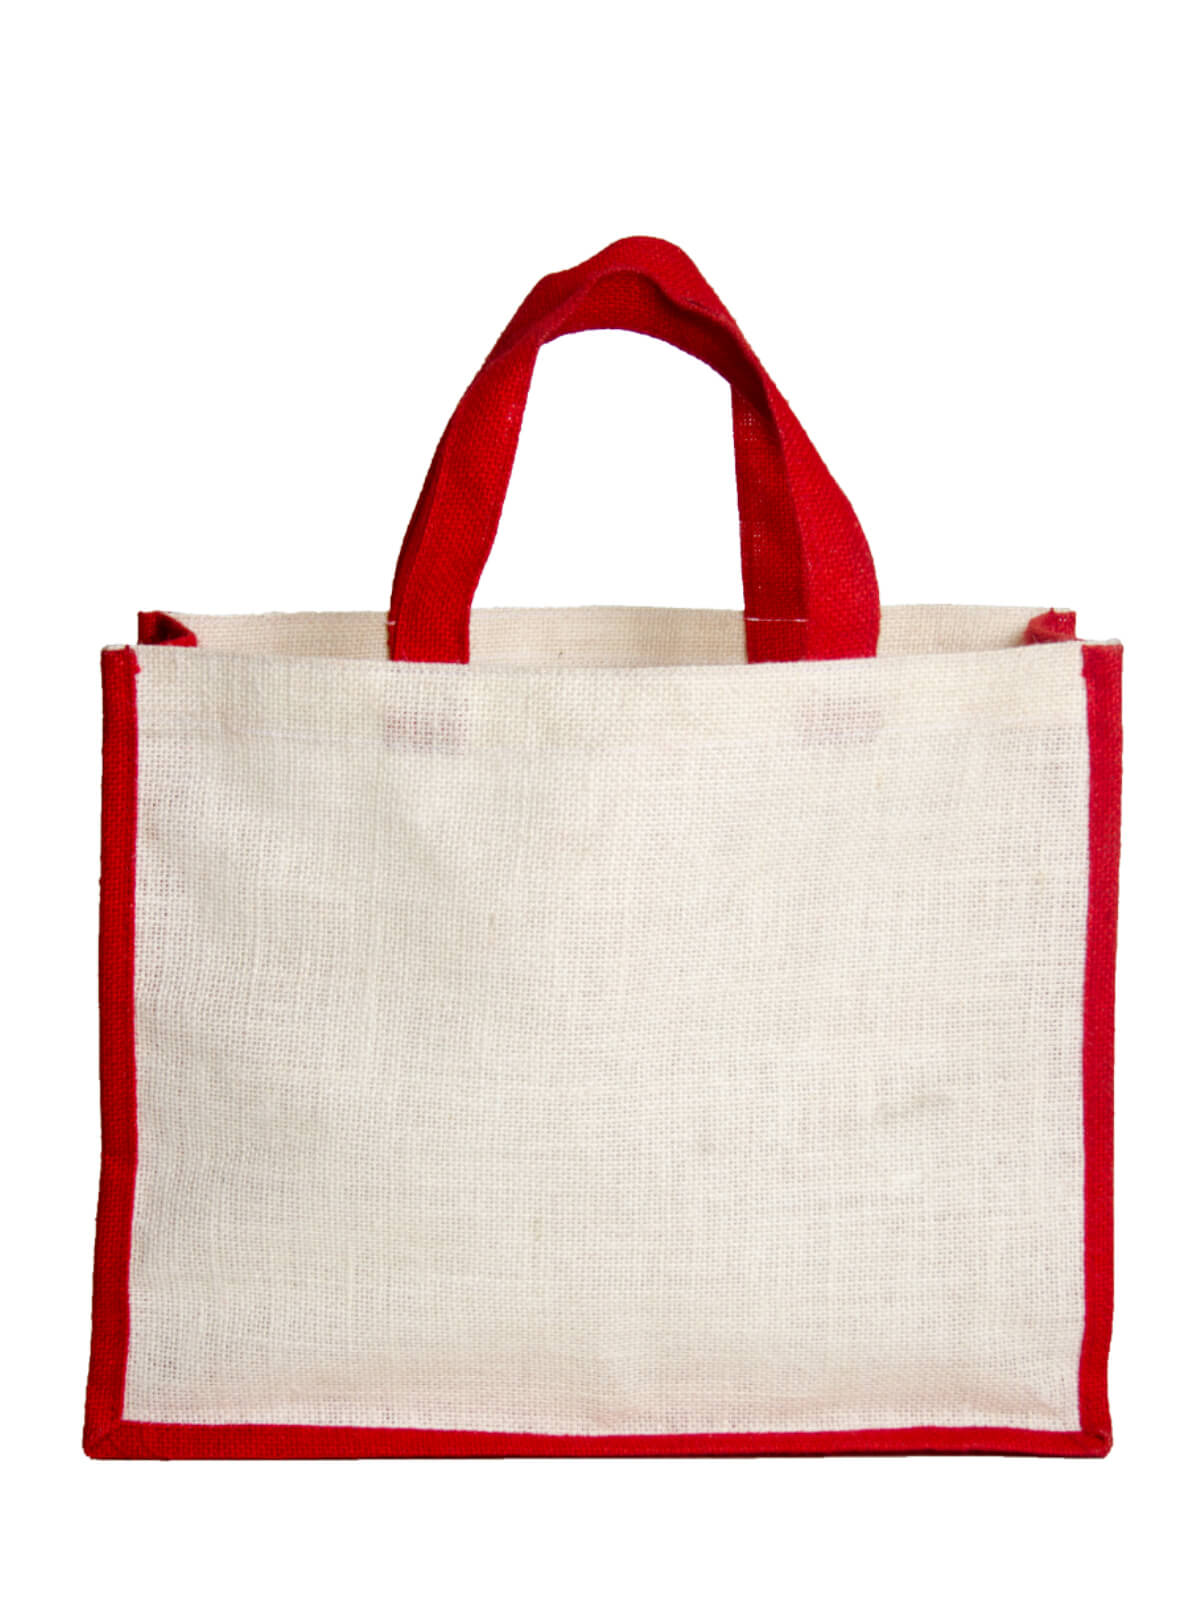 Scarlet Red and White Shopping Bag